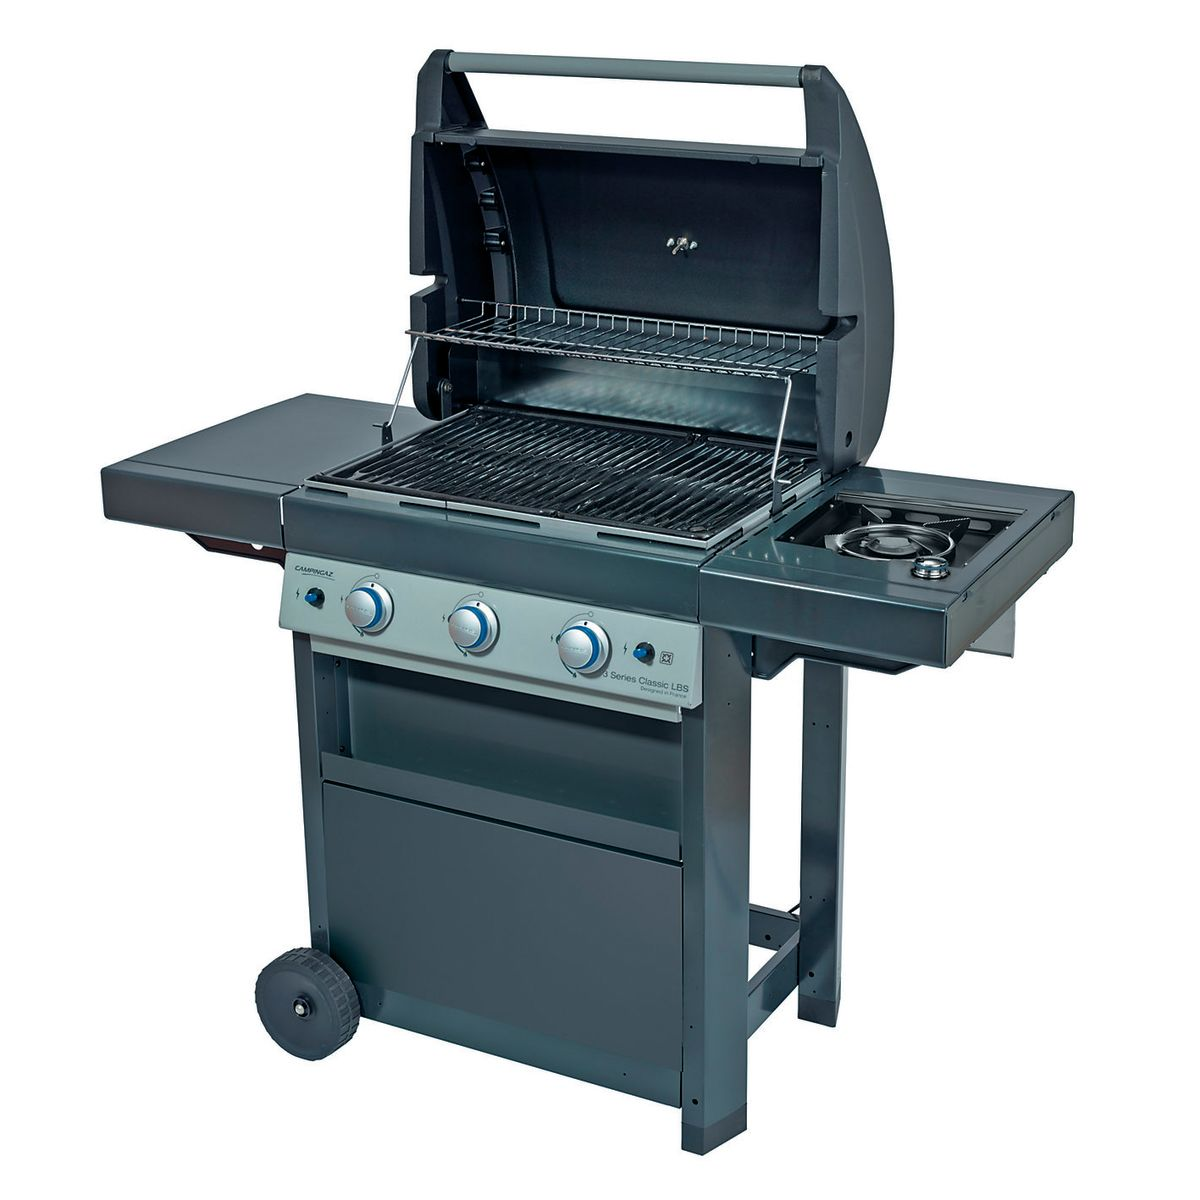 bbq weber leroy merlin cheap barbecue gaz plancha weber castorama barbecue gaz with bbq weber. Black Bedroom Furniture Sets. Home Design Ideas